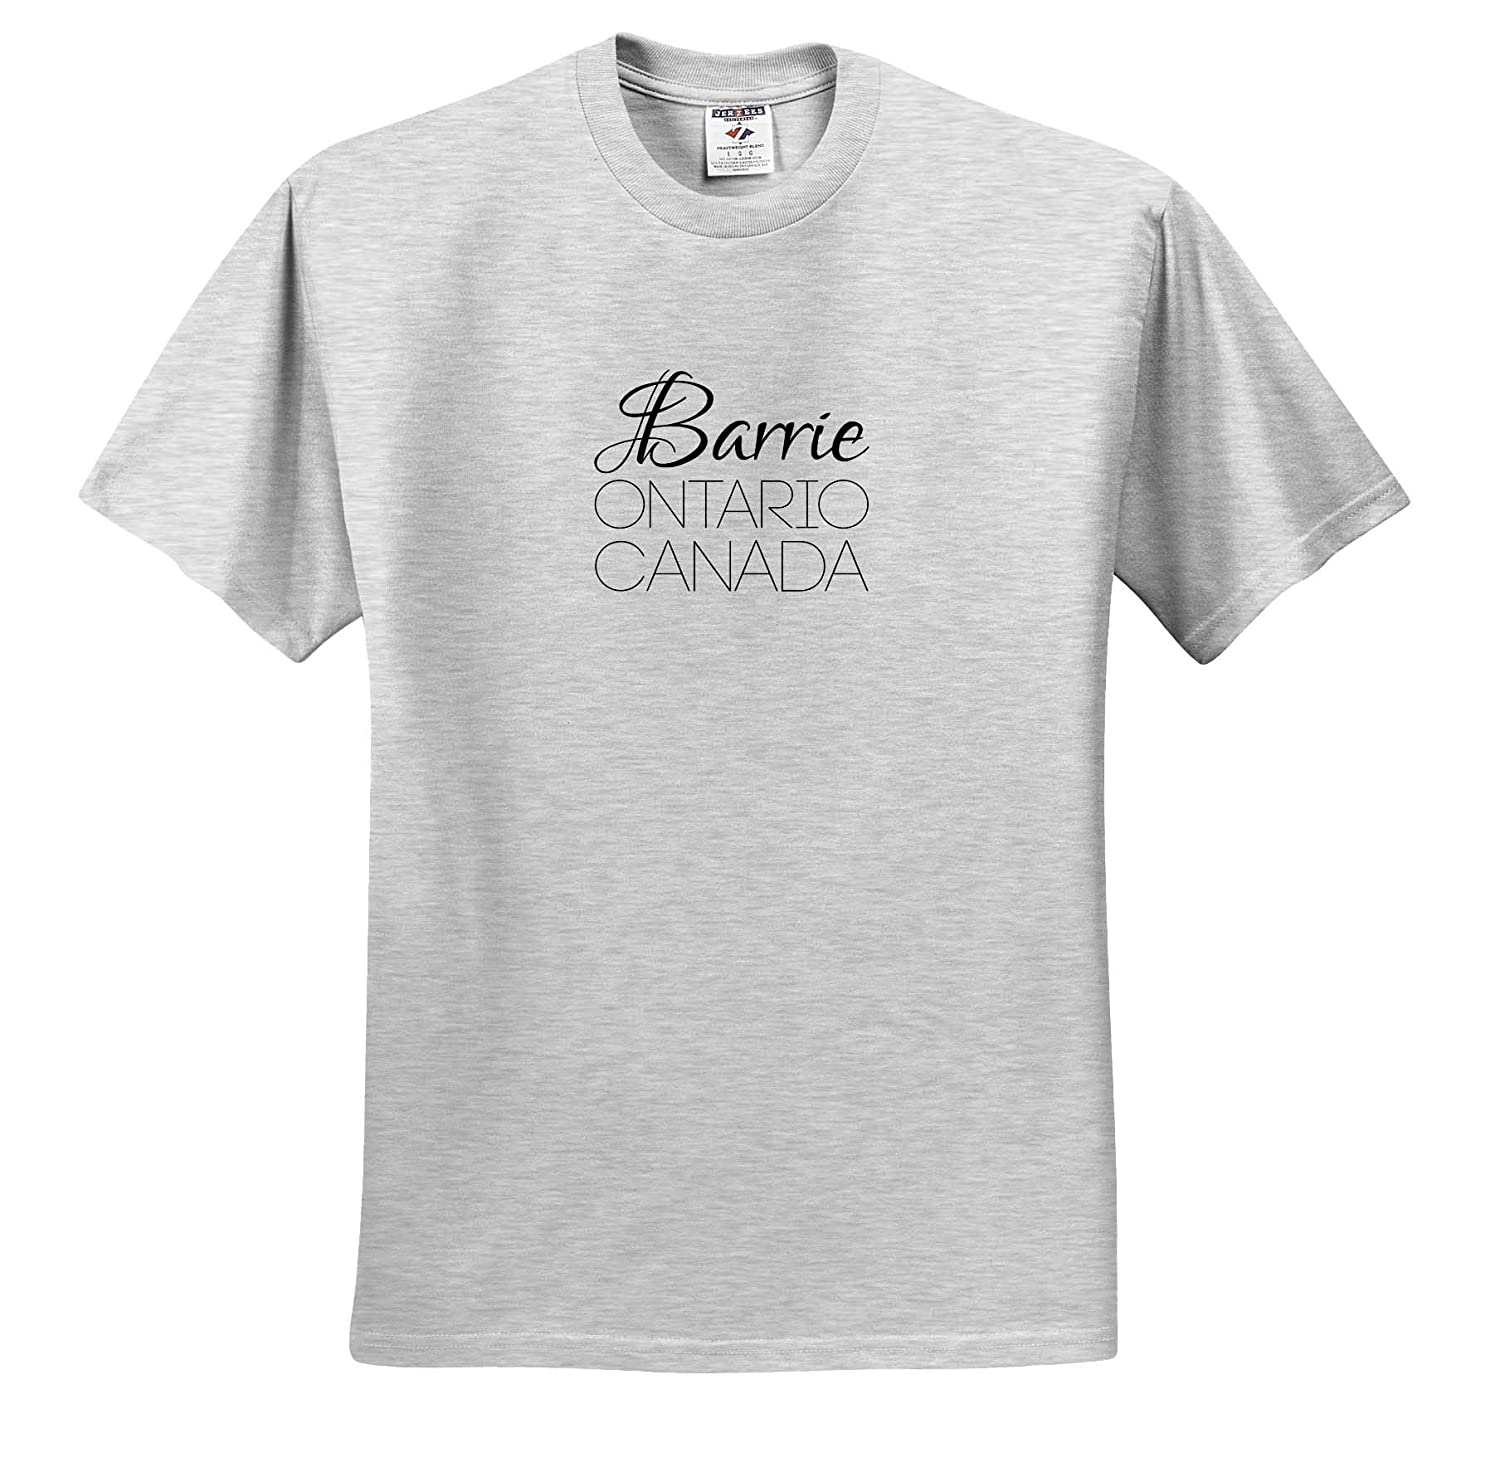 Charming Patriotic Home Town Gift T-Shirts 3dRose Alexis Design Canadian Cities Barrie Ontario Canada